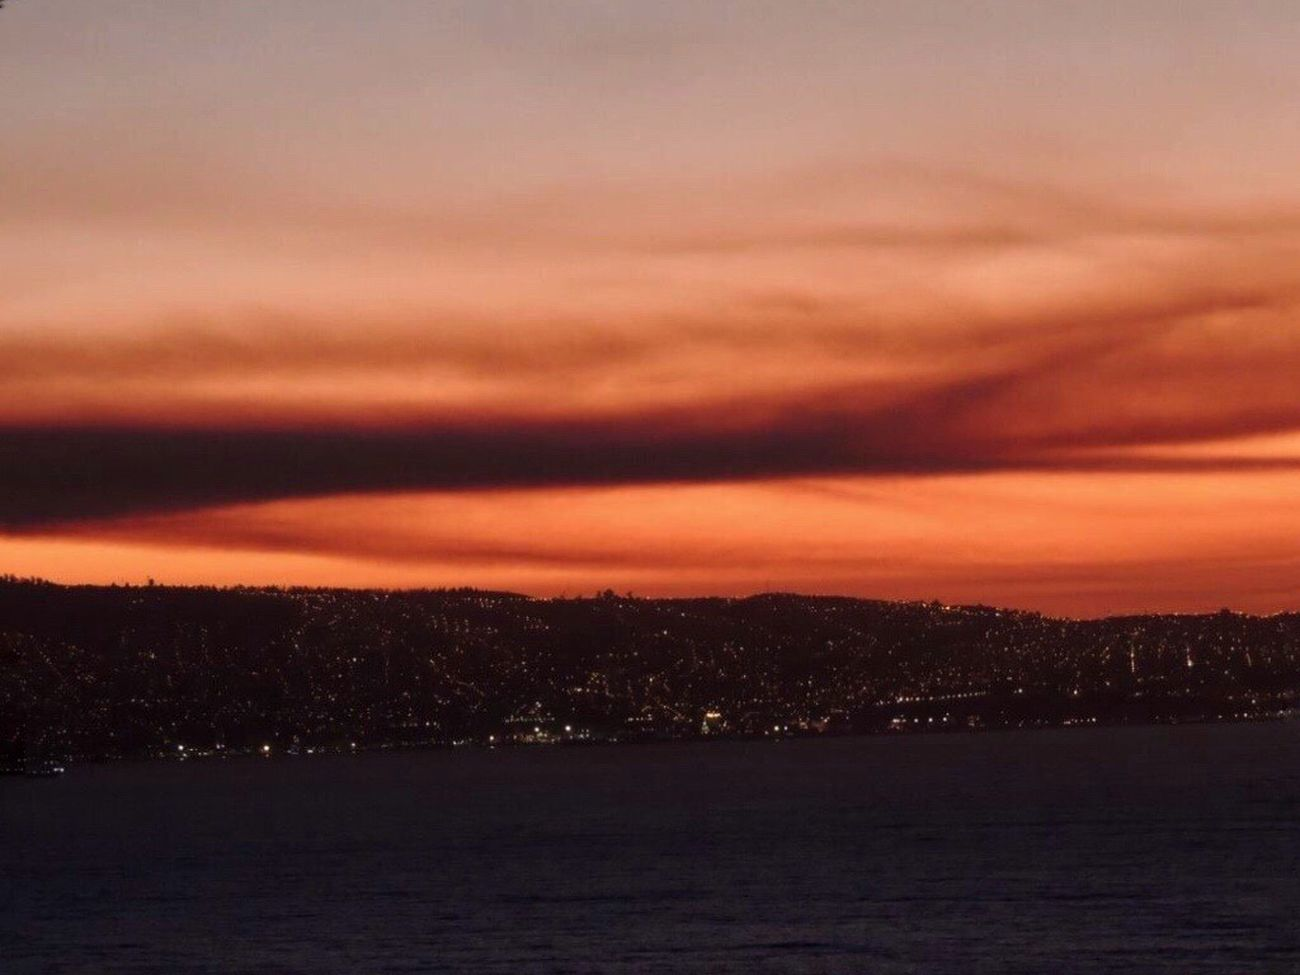 Check This Out Valparaiso View Fire In The Sky City Lights After The Sunset Hills Scenics Dusk Sky And Clouds Dramatic Sky Sea And Sky From My Lens Reñaca Beach , Chile